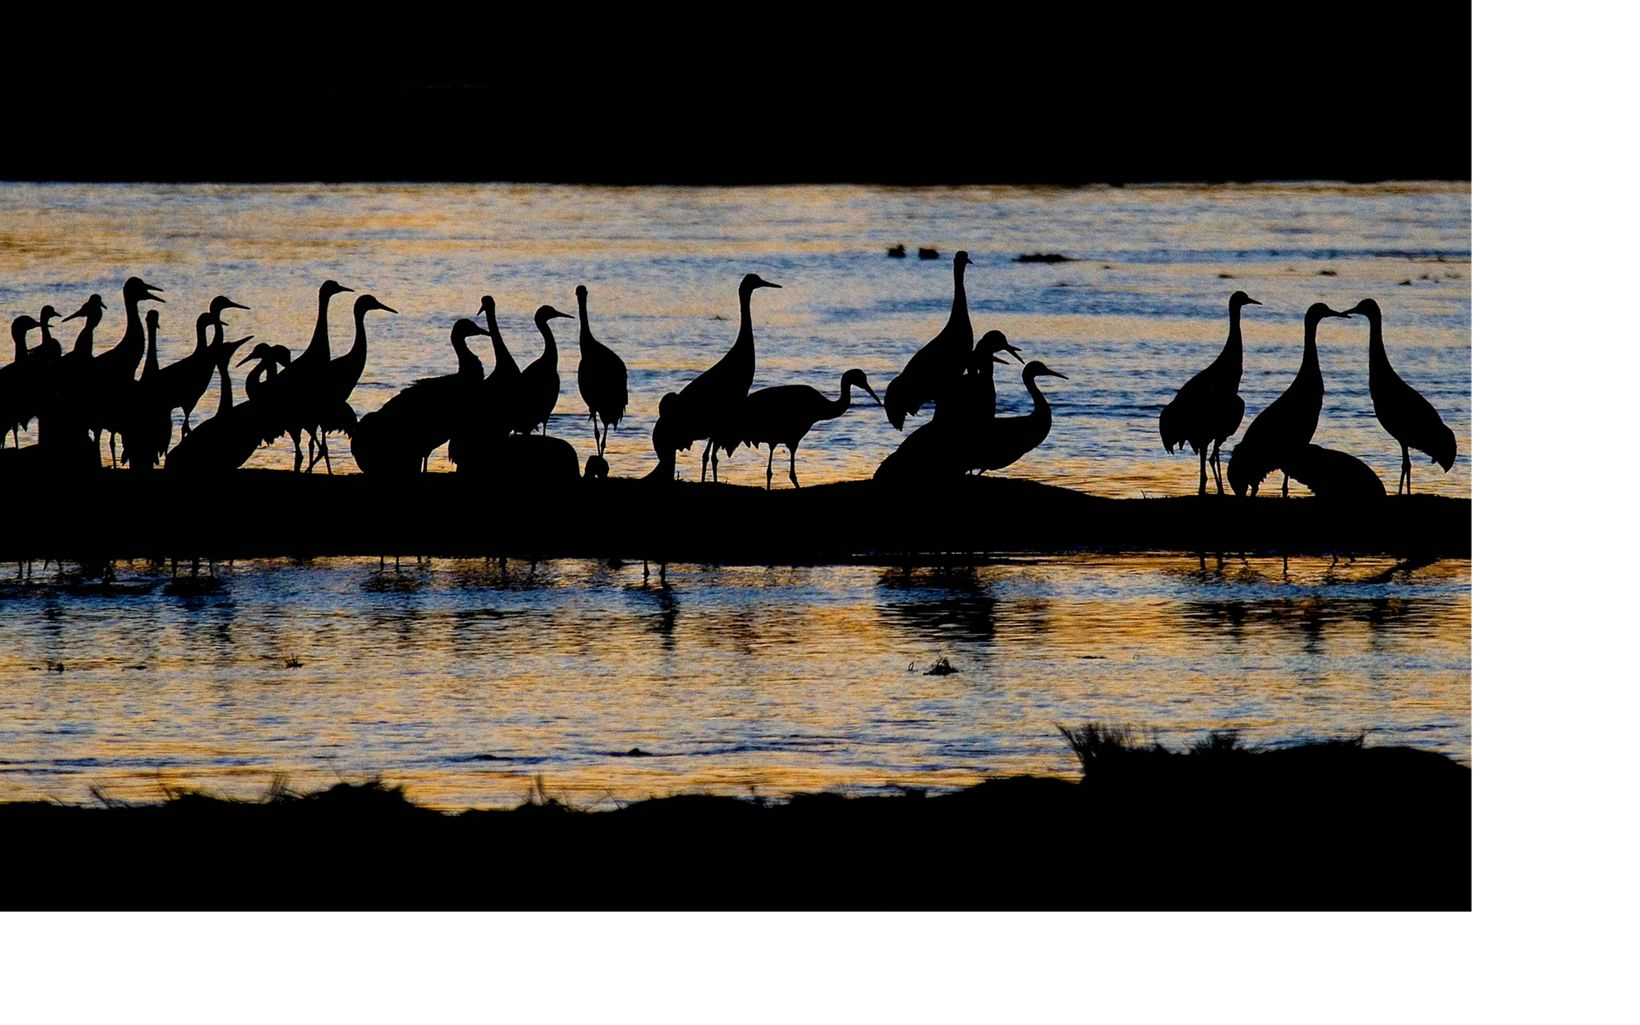 silhouettes of sandhill cranes on a beach